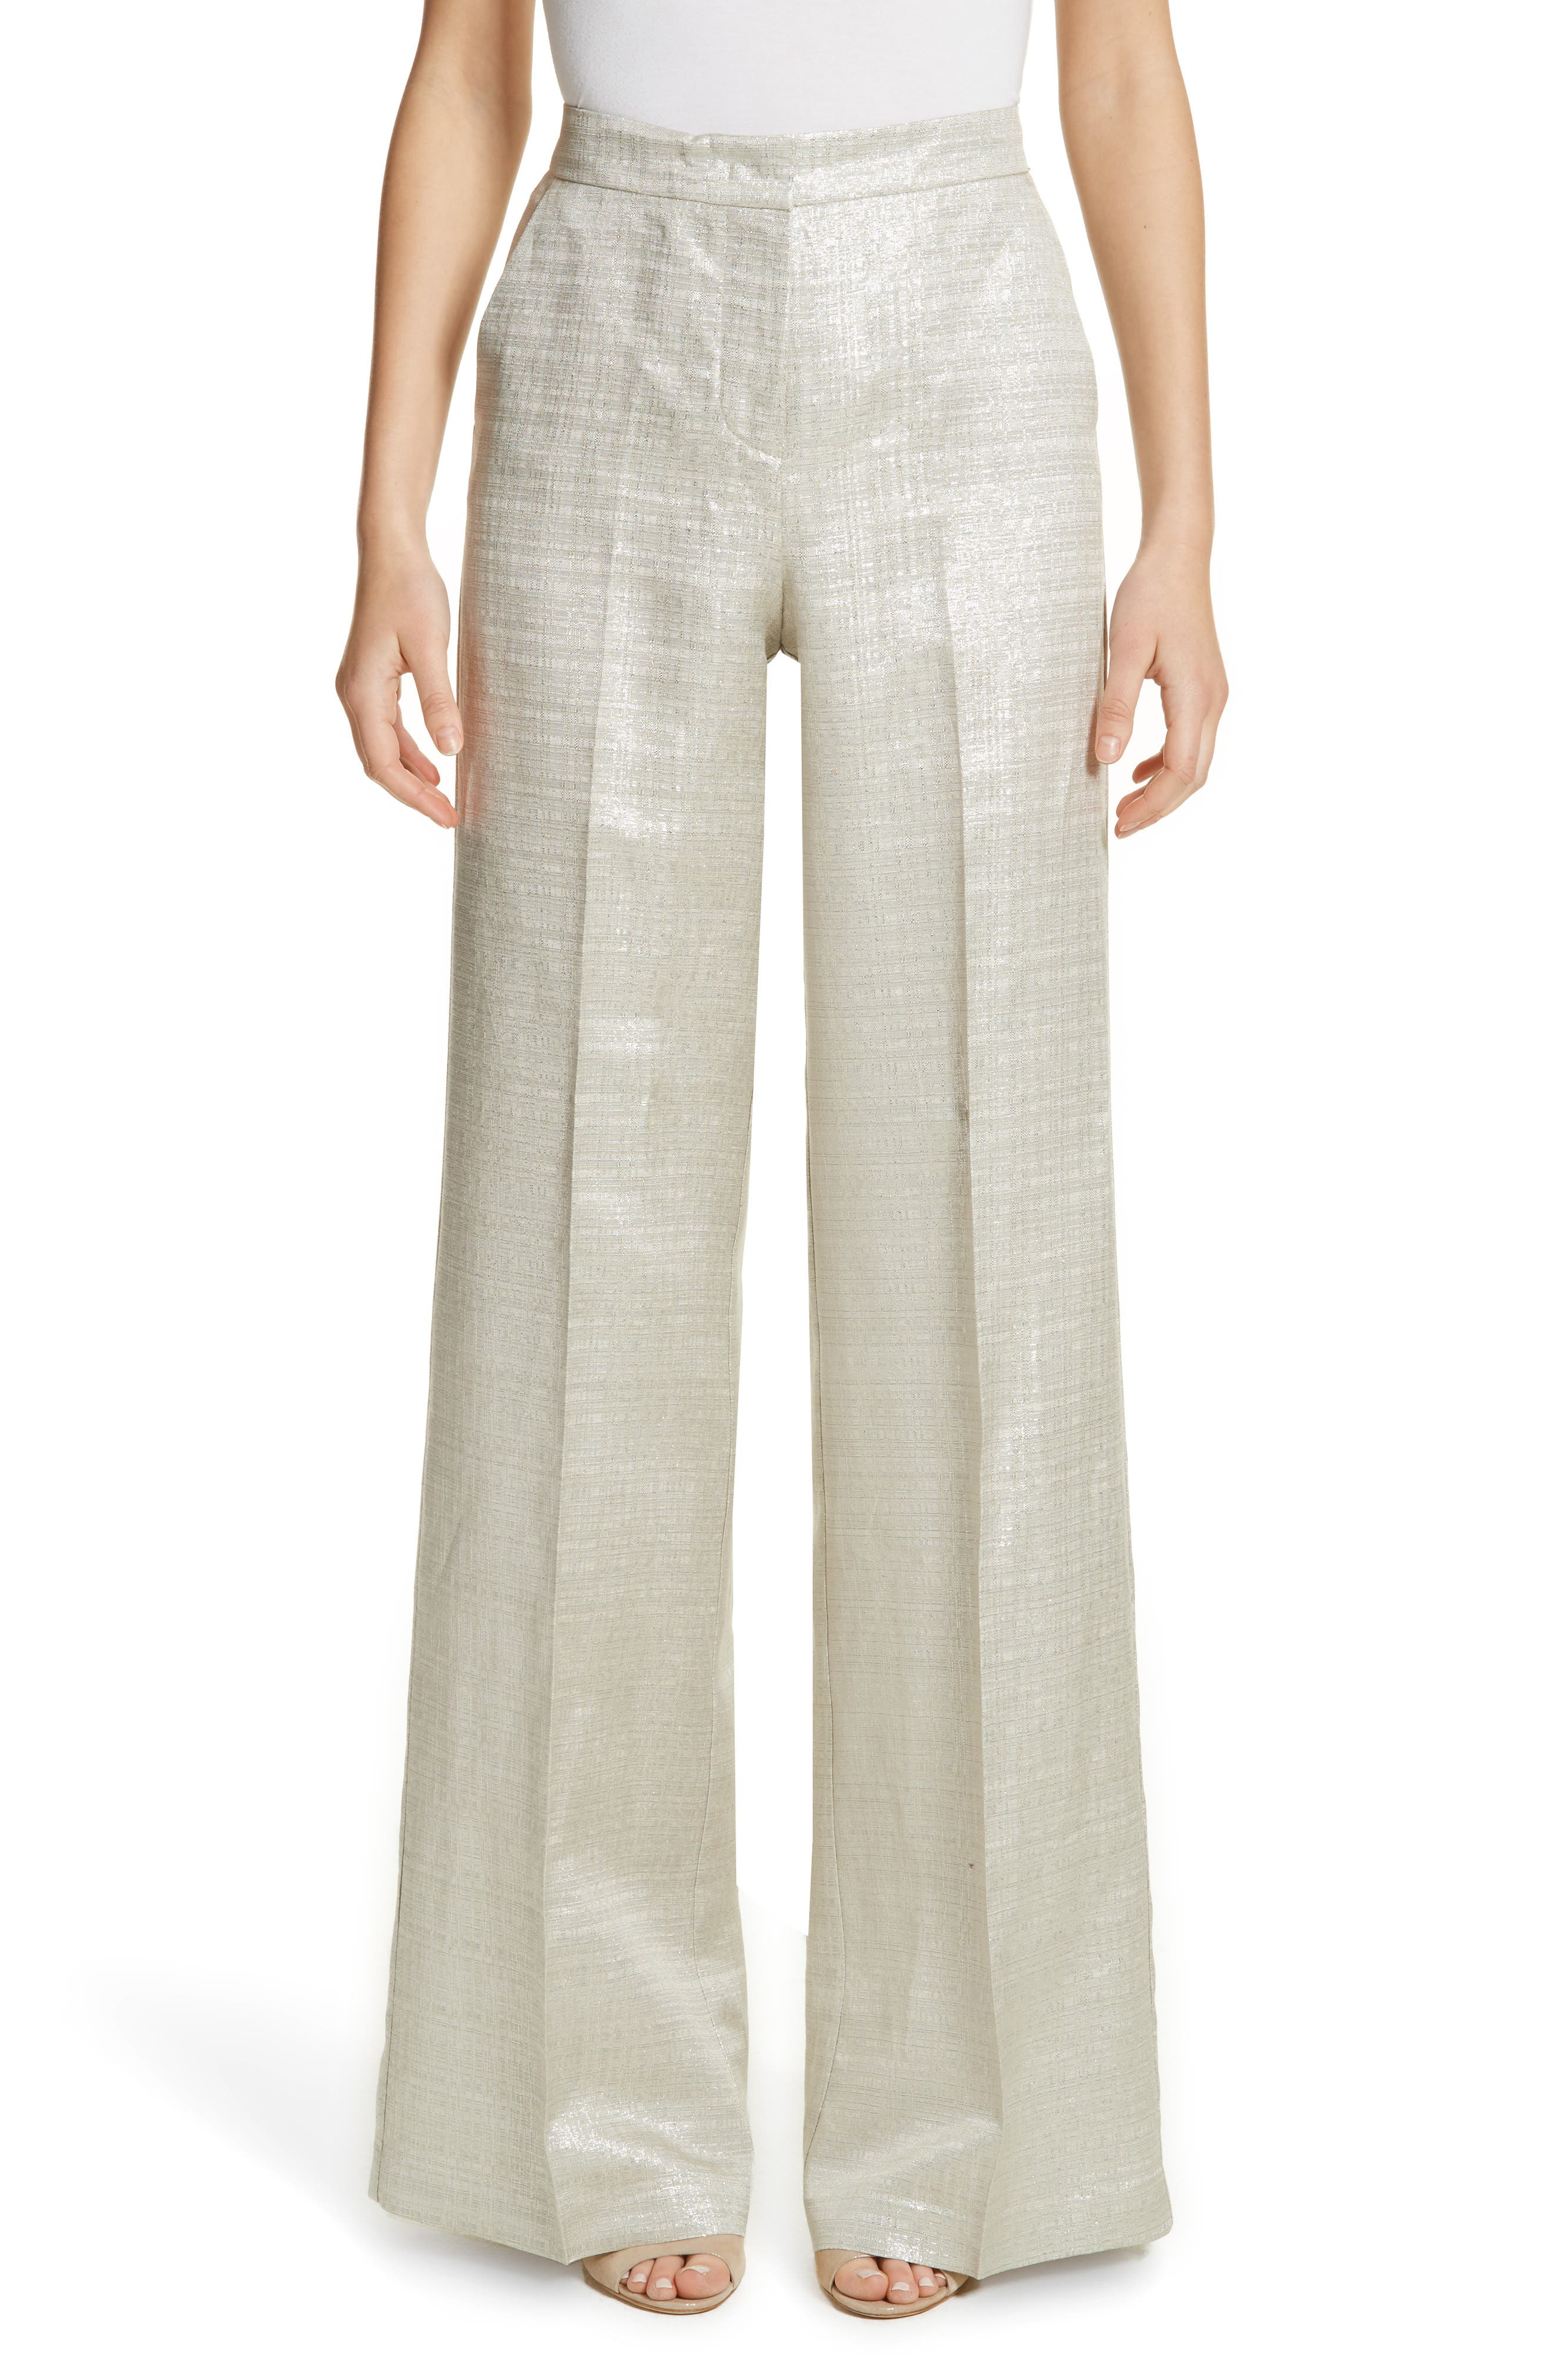 Etro Metallic Wide Leg Pants